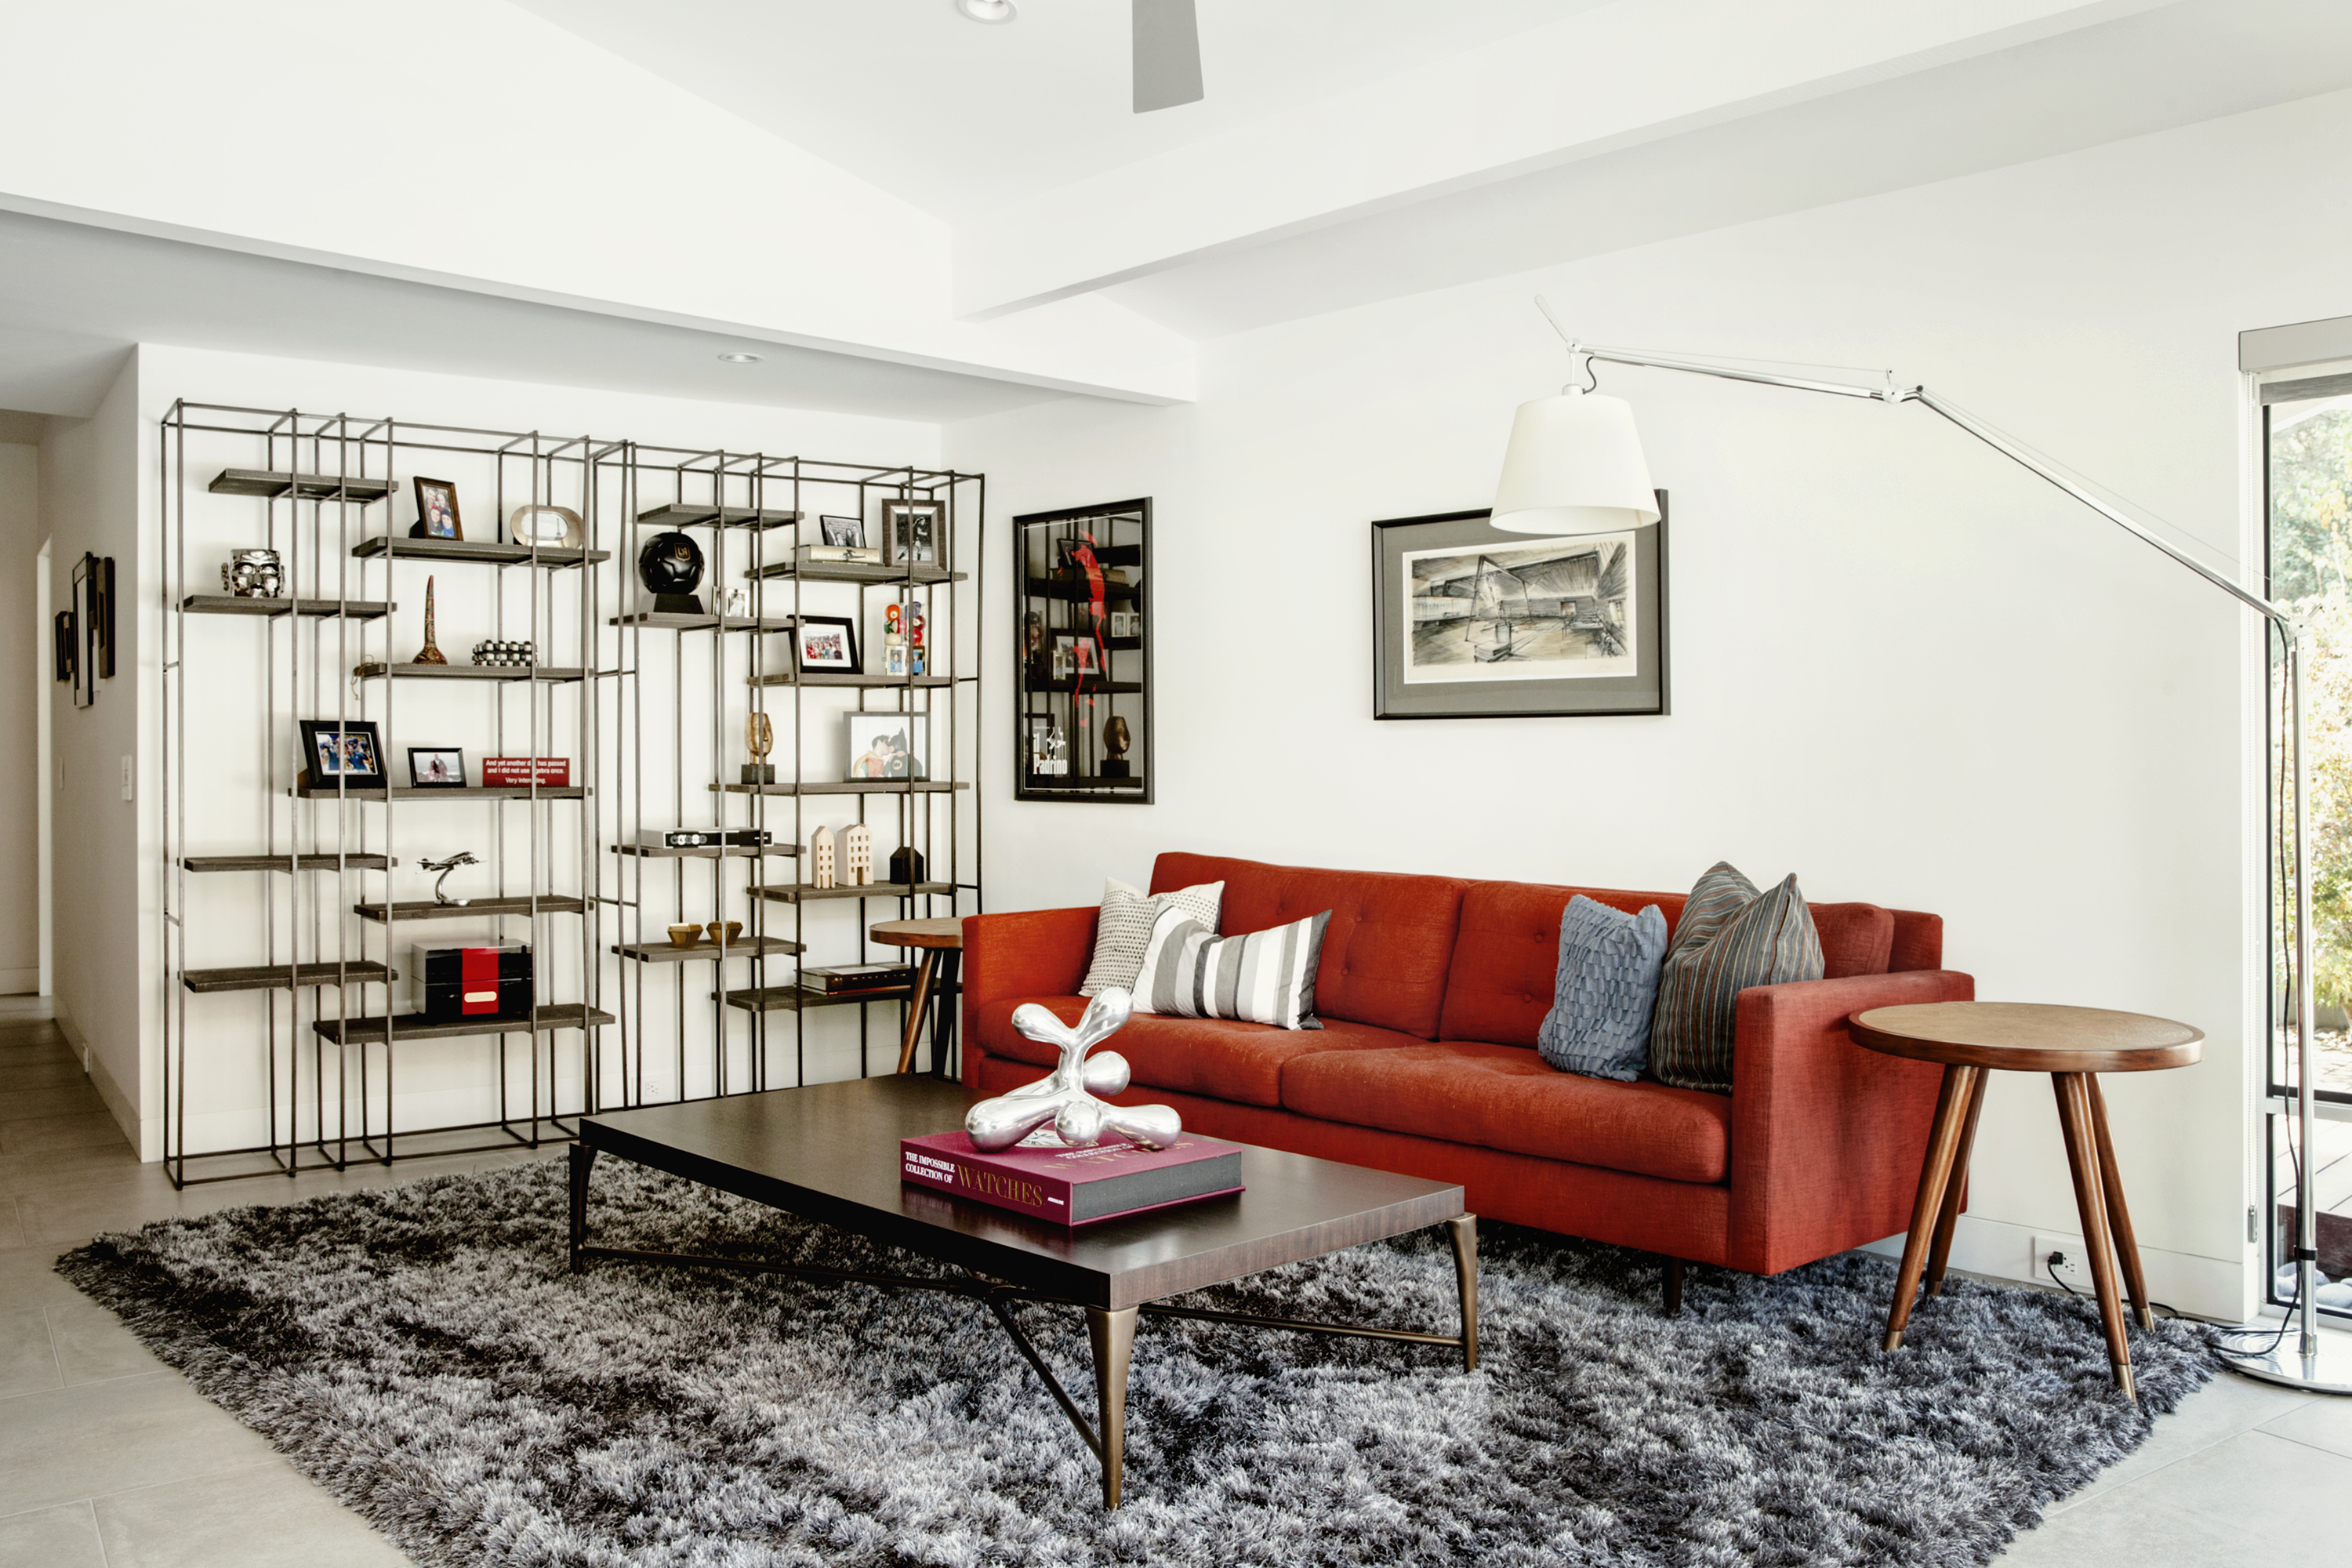 classic midcentury modern home dazzles after careful remodel curbed. Black Bedroom Furniture Sets. Home Design Ideas